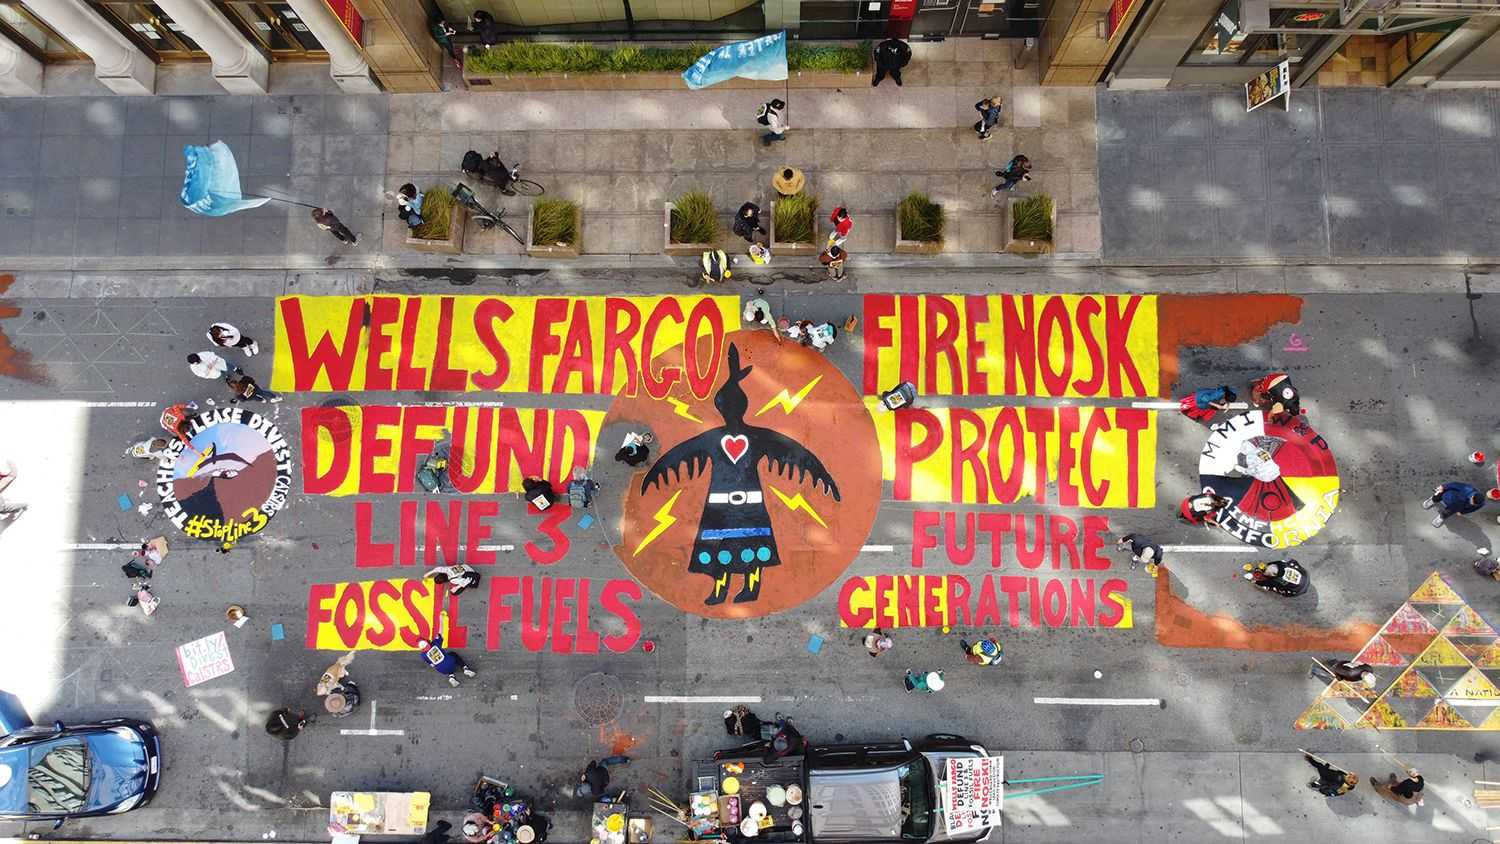 Drone photo of painting the street outside Wells Fargo bank.